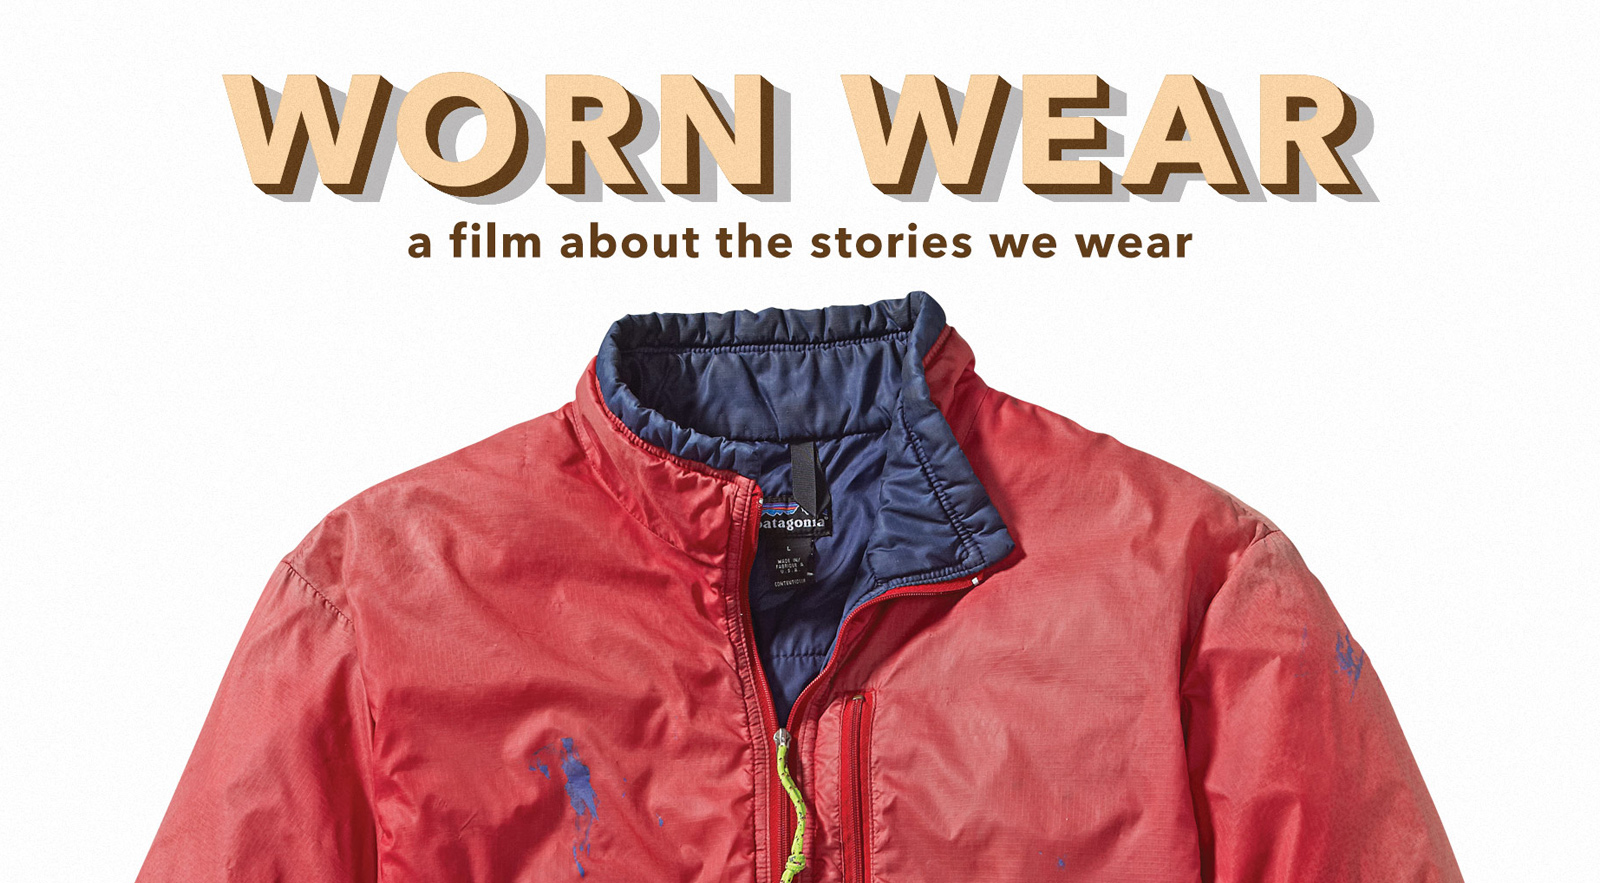 Worn Wear is Patagonia service in which the brand fixes broken Patagonia gears and clothes for free